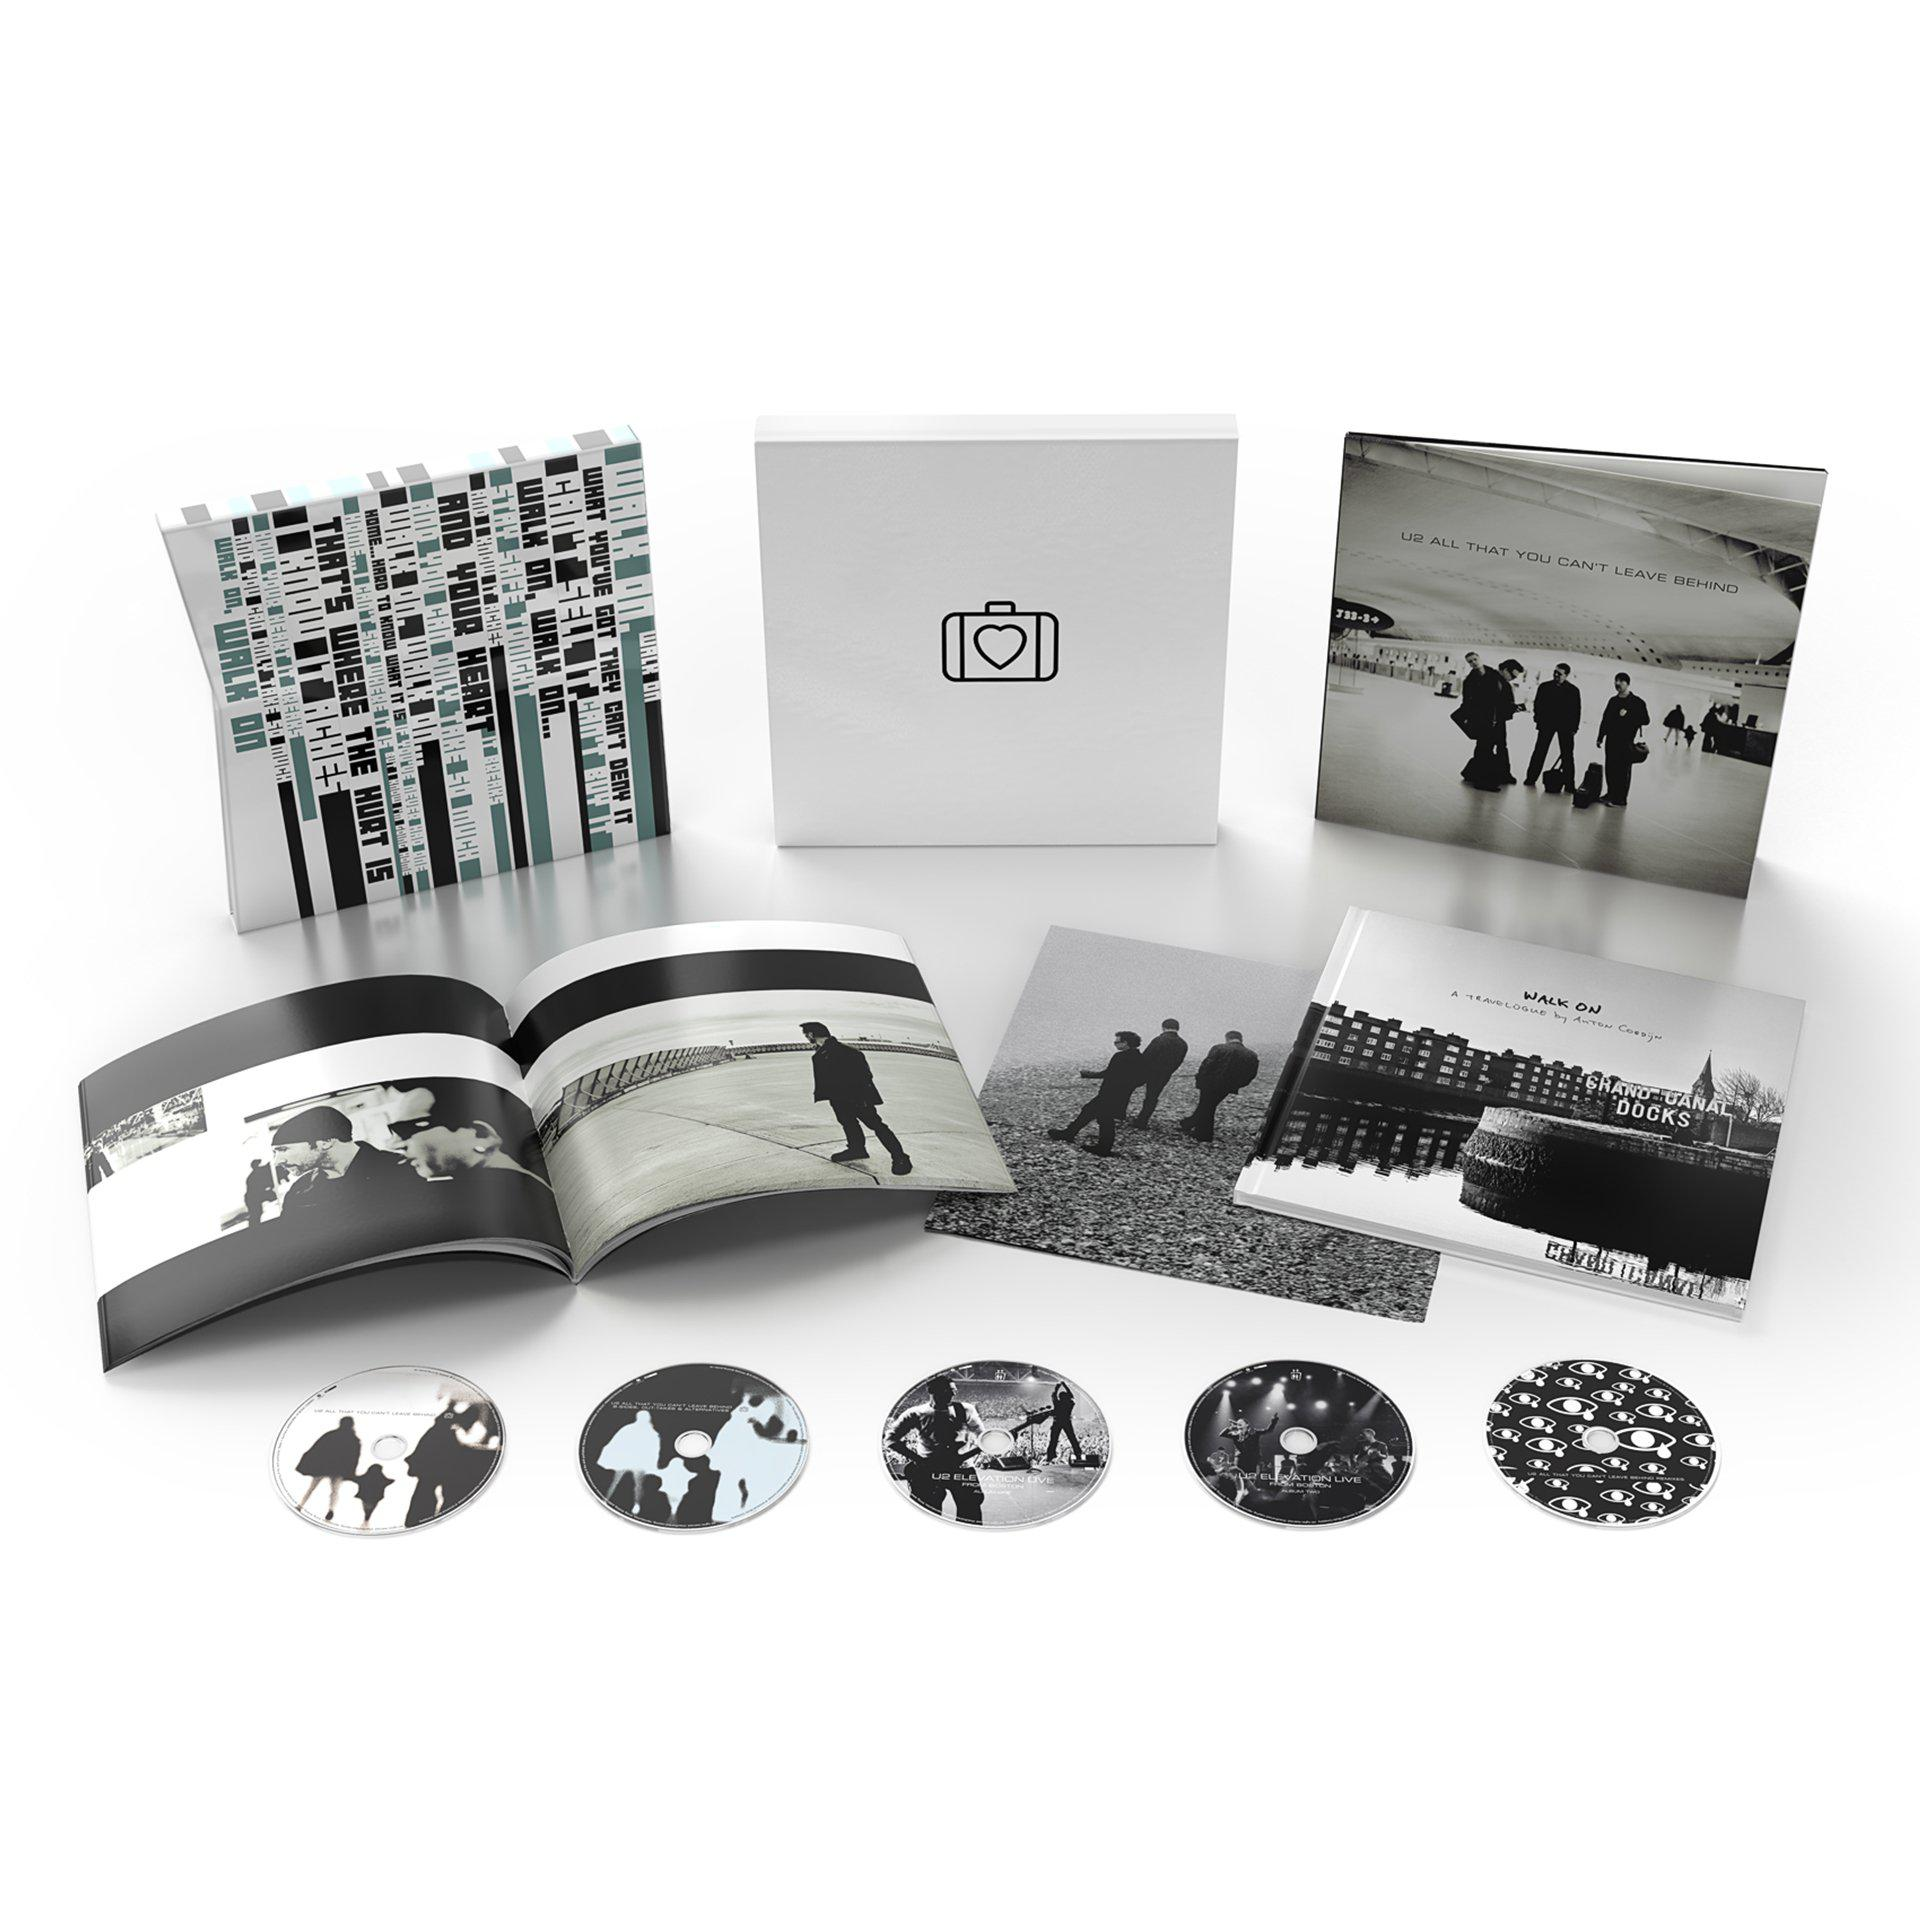 All That You Can't Leave Behind (20th Anniversary) Deluxe CD Boxset